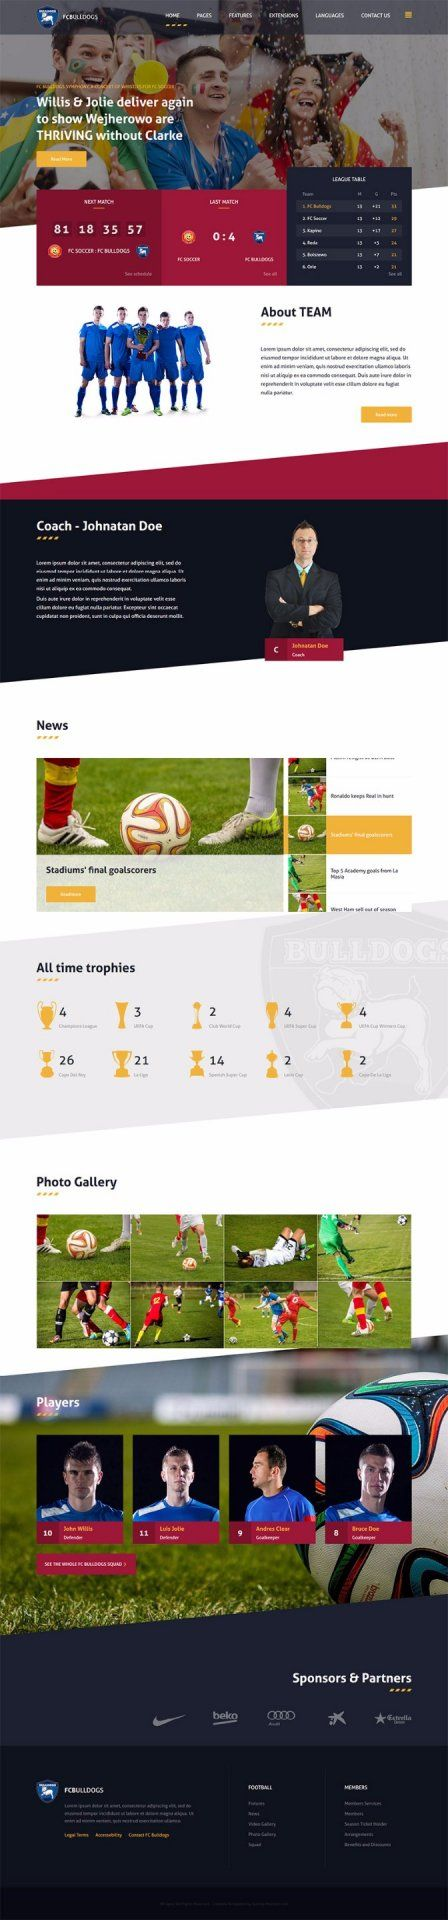 Jm Sport Website Template For Joomla Cms With League Management